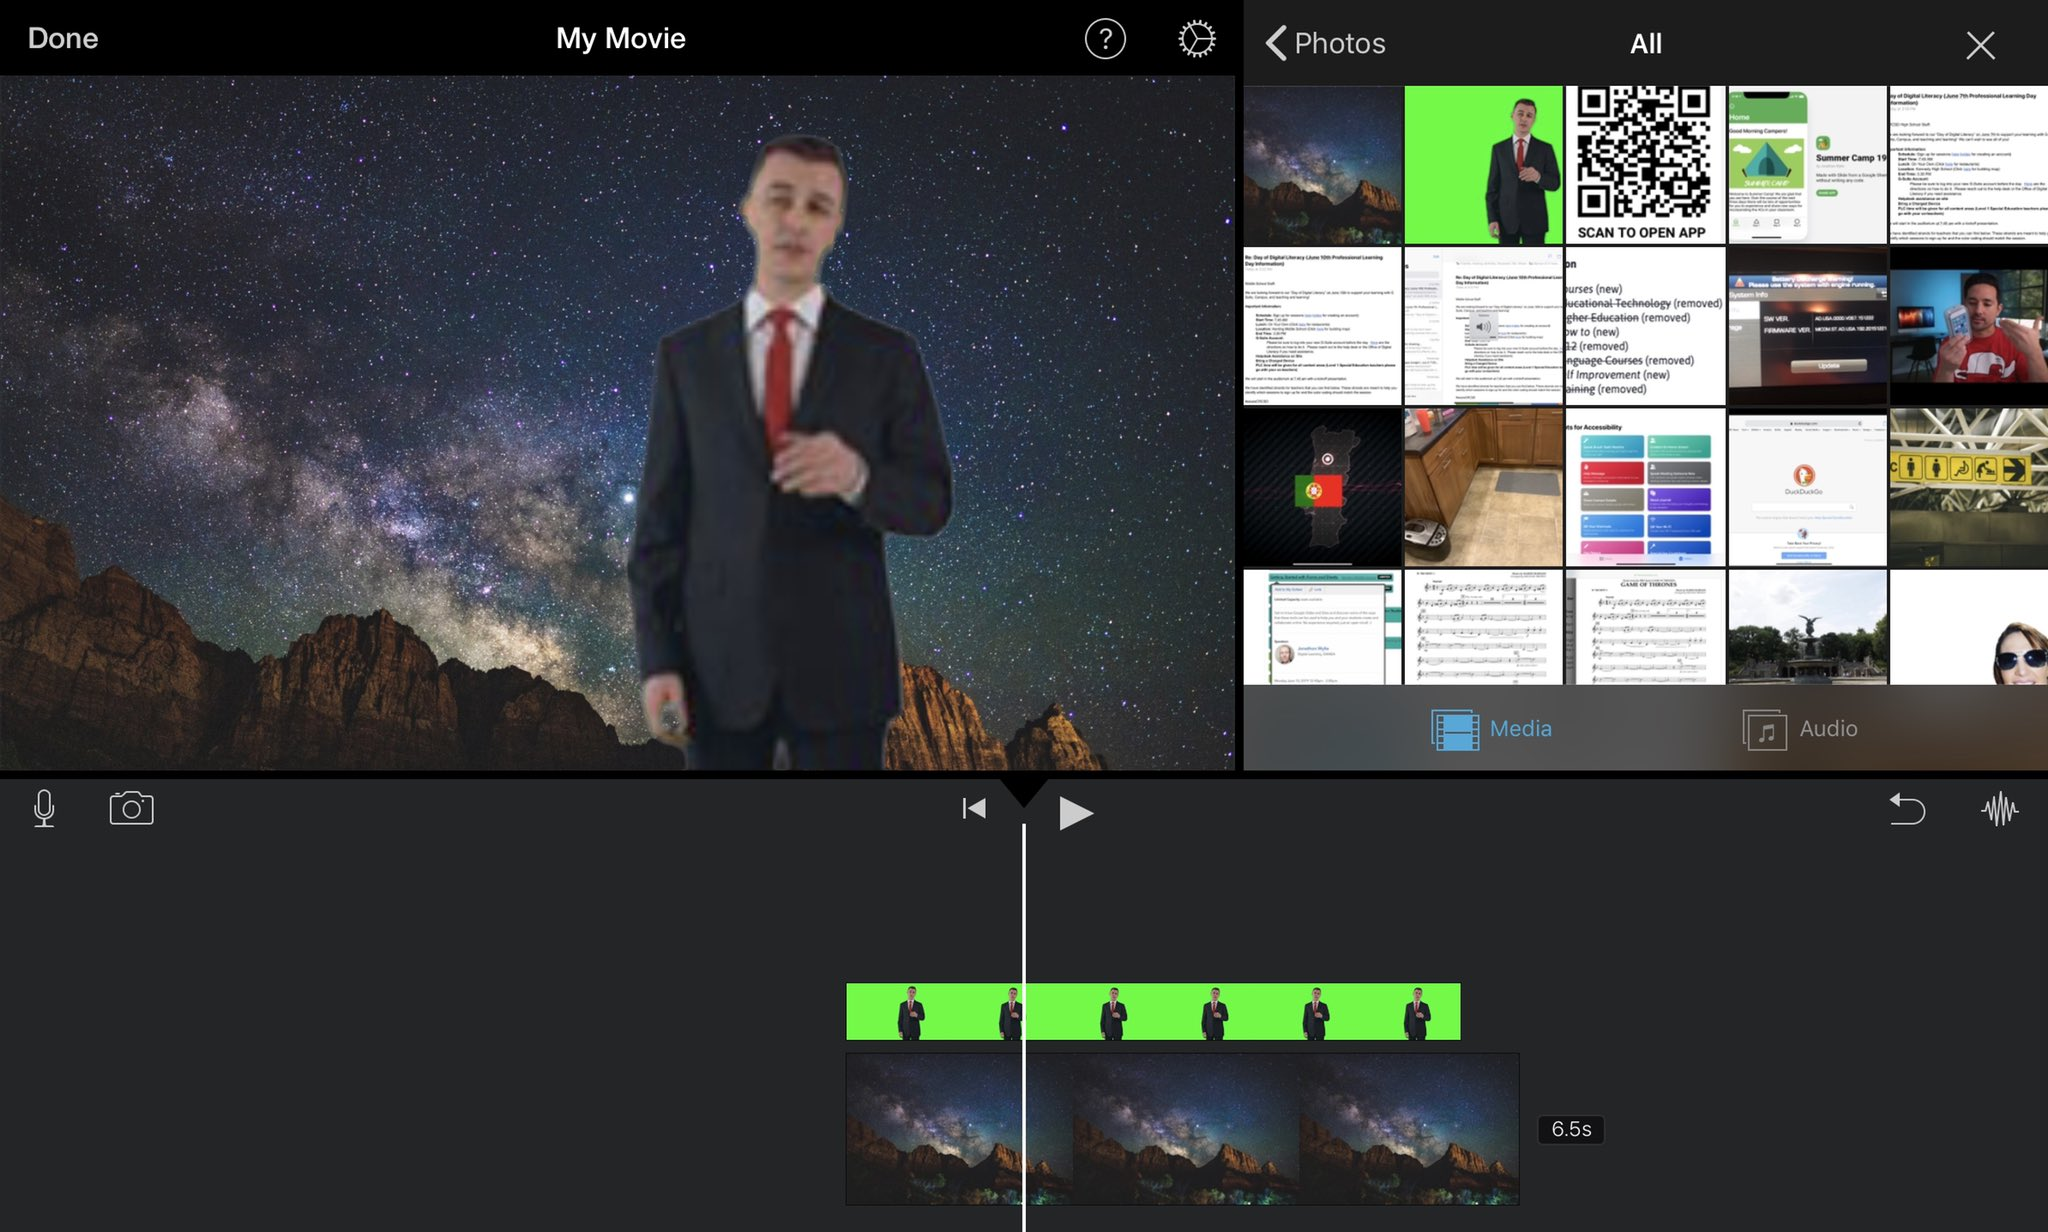 Looking forward to playing more with the new green screen functionality in the latest update for iMovie for iOS! 😎  #edtech #ipaded #ipadchat #edtechchat #edapps #adedu https://t.co/2N9raZlJ92